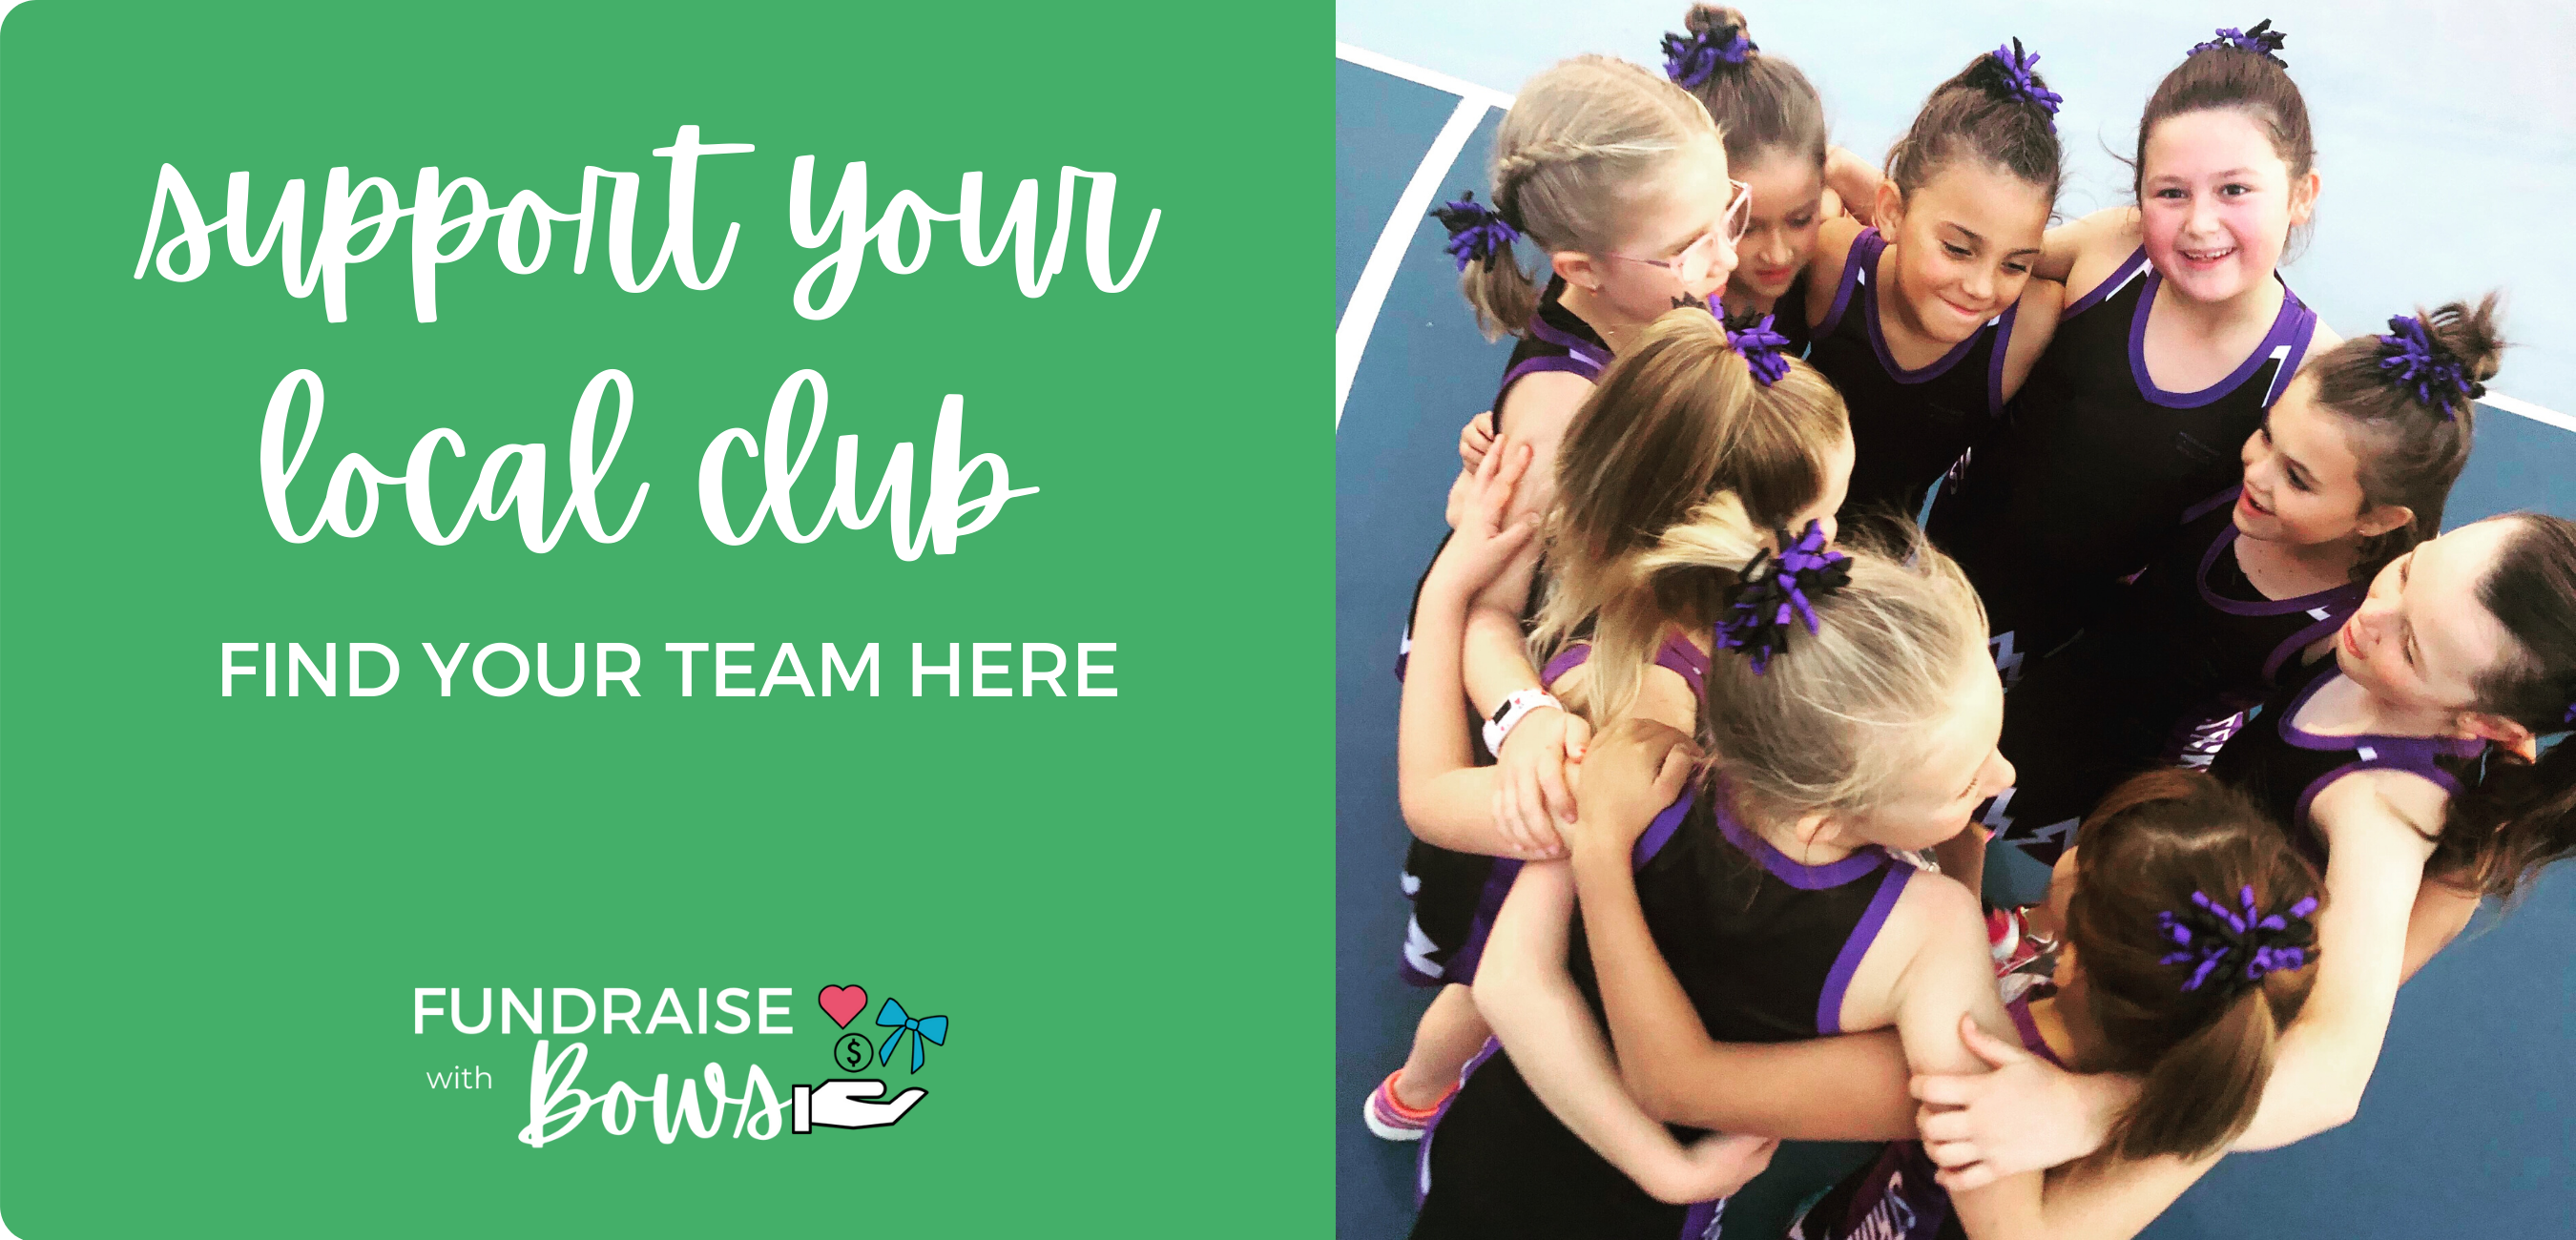 support your local club - fundraise with bows - ponytails and fairytales